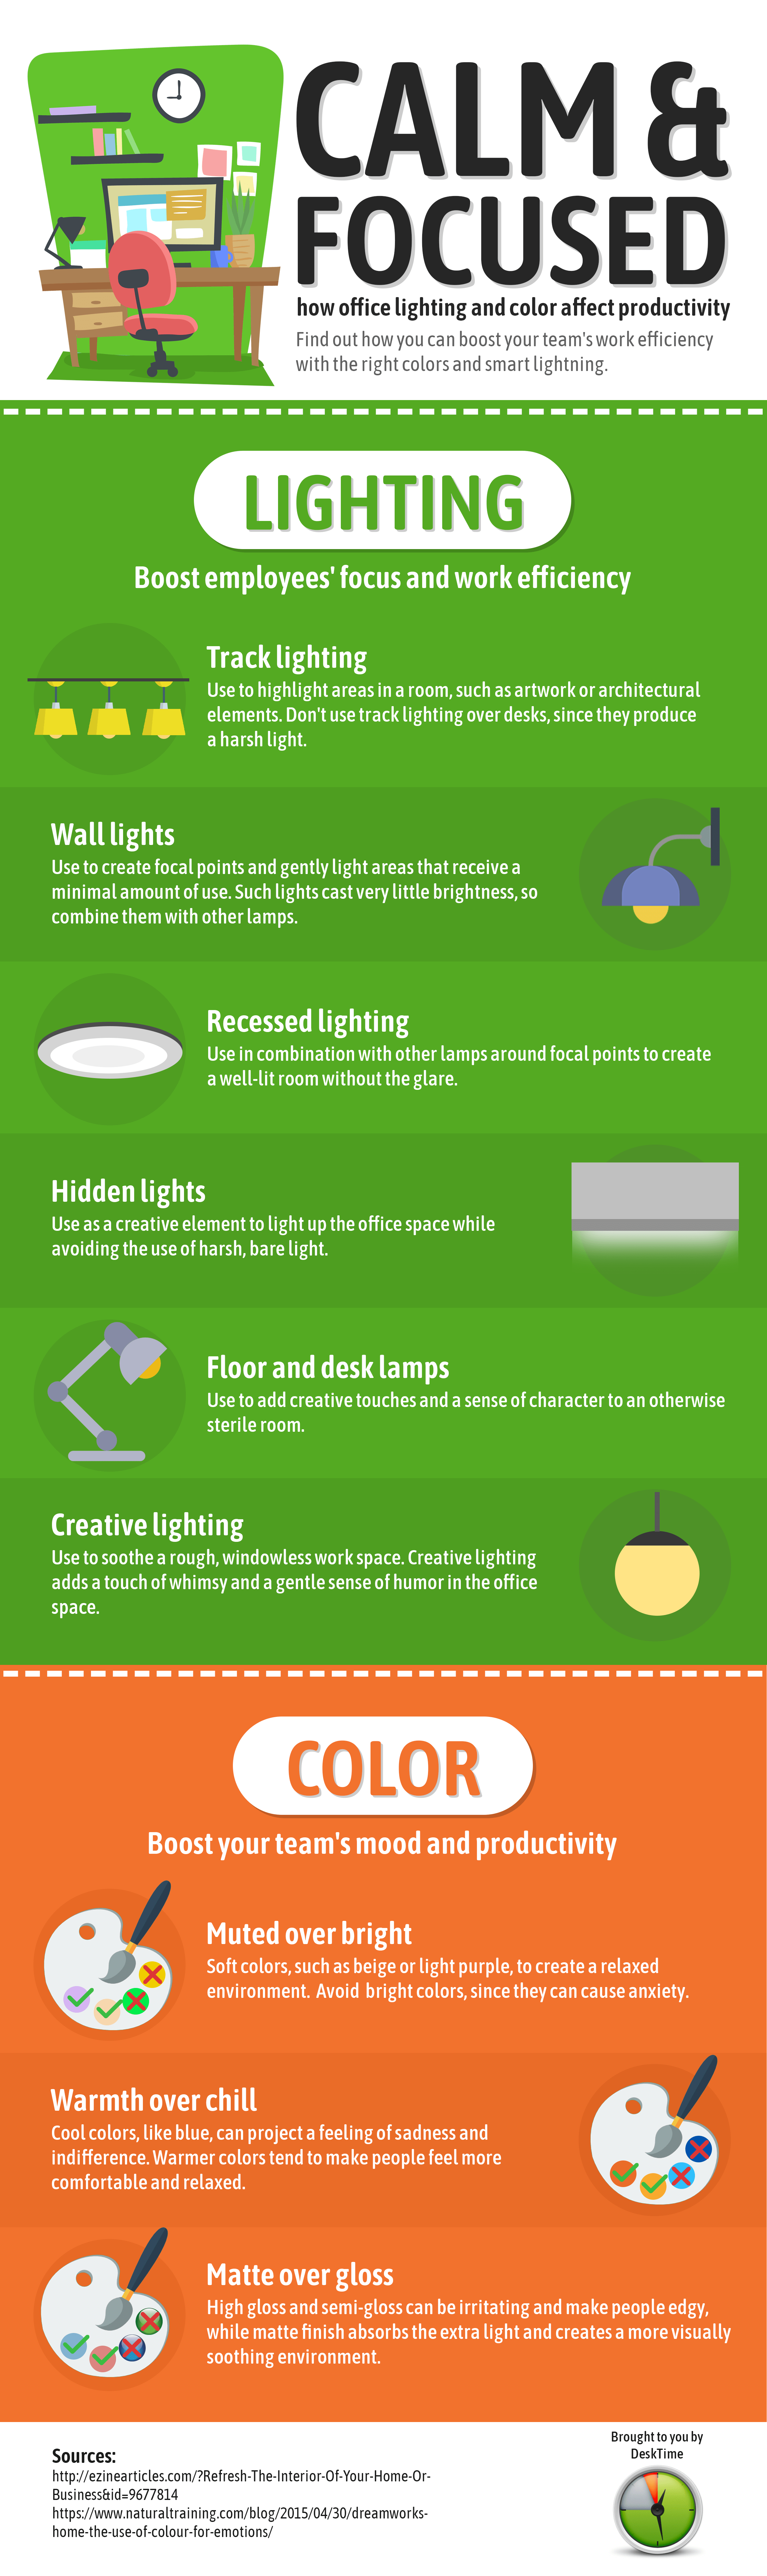 how lighting and color